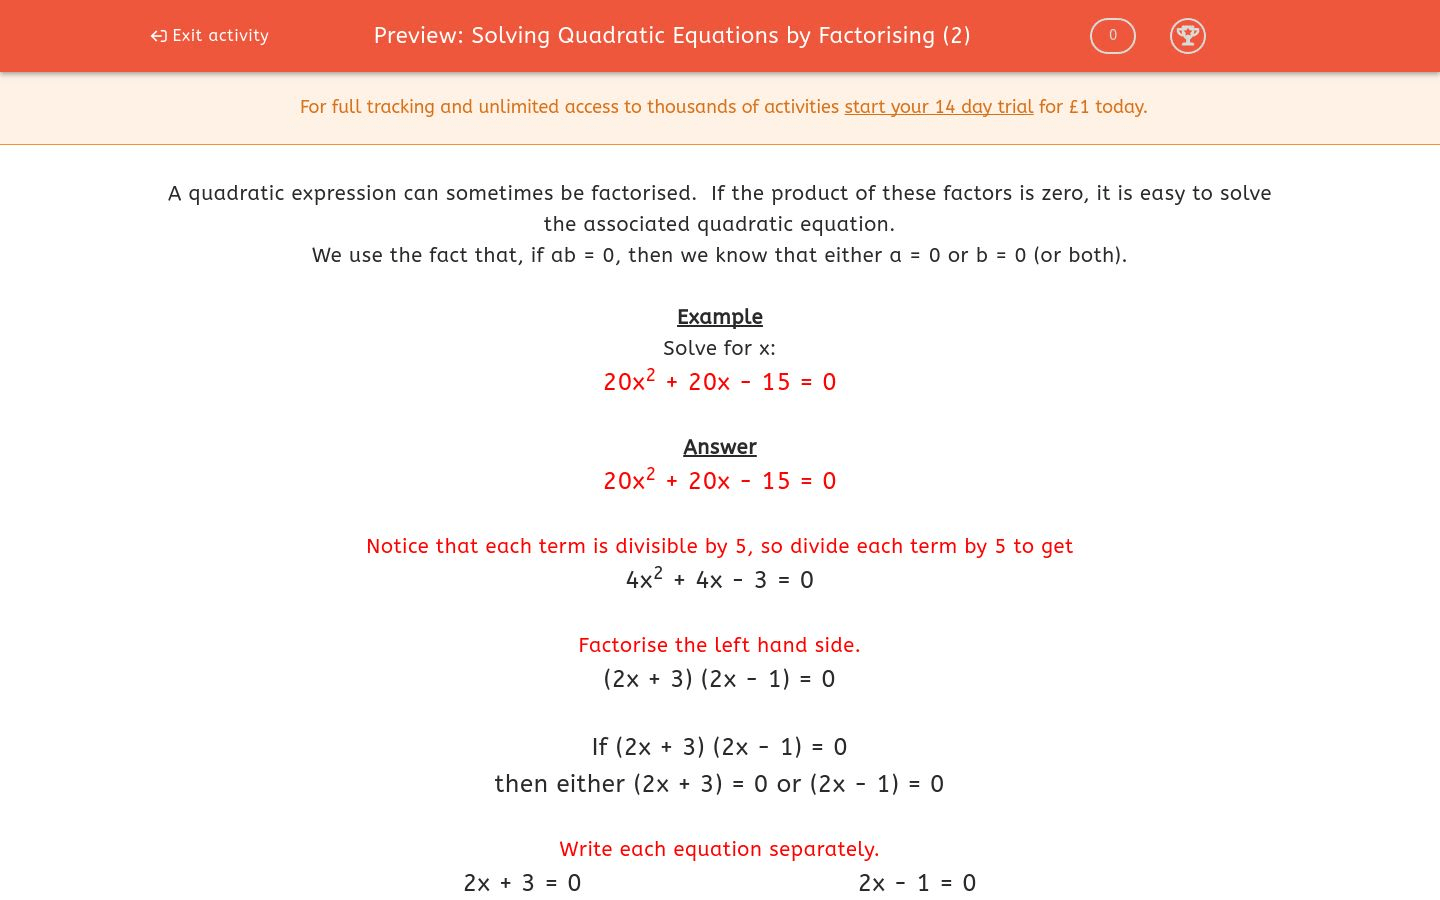 Solving Quadratic Equations By Factorising 2 Worksheet